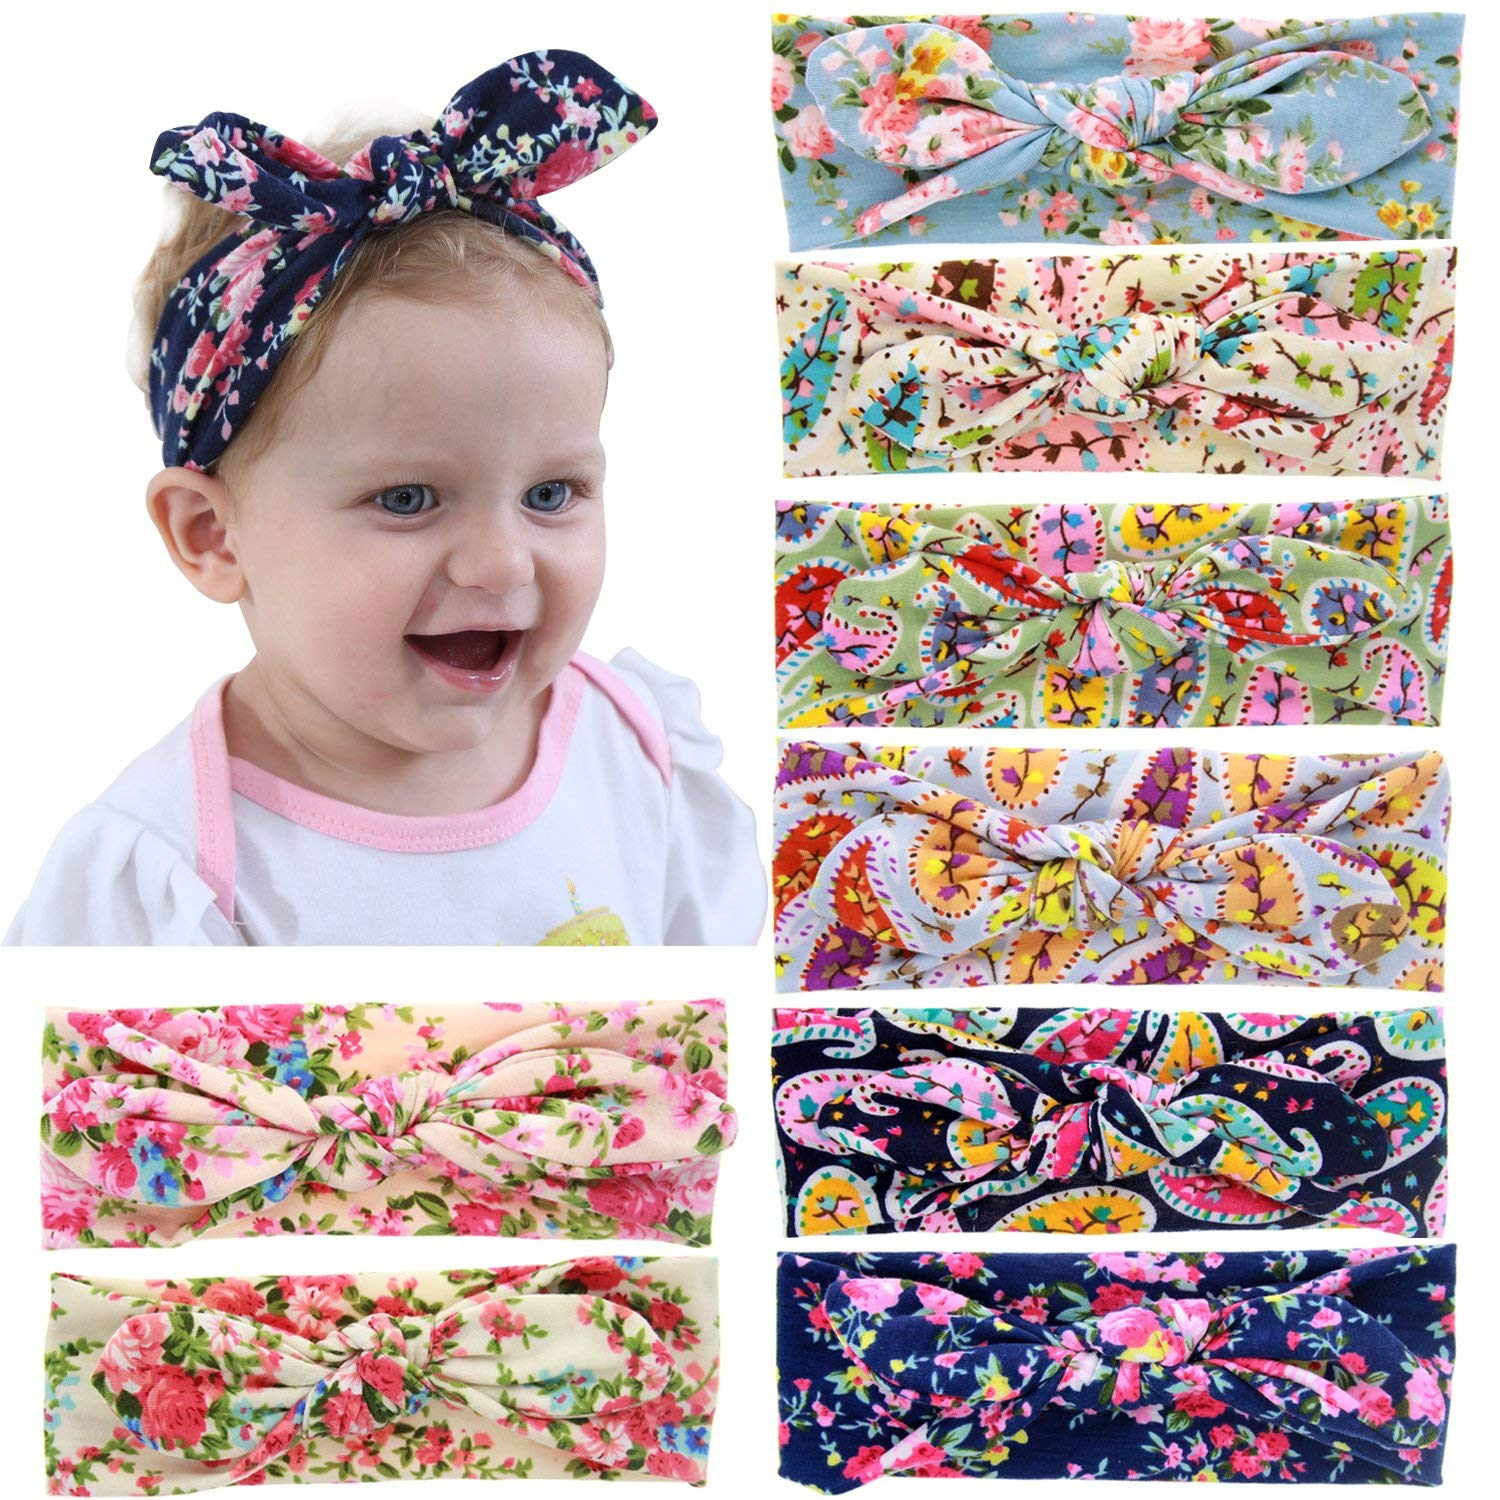 6a72b1363 Get Quotations · Baby Girl Headbands Turban Knotted Headwraps for Babies  Infants Toddlers Kids